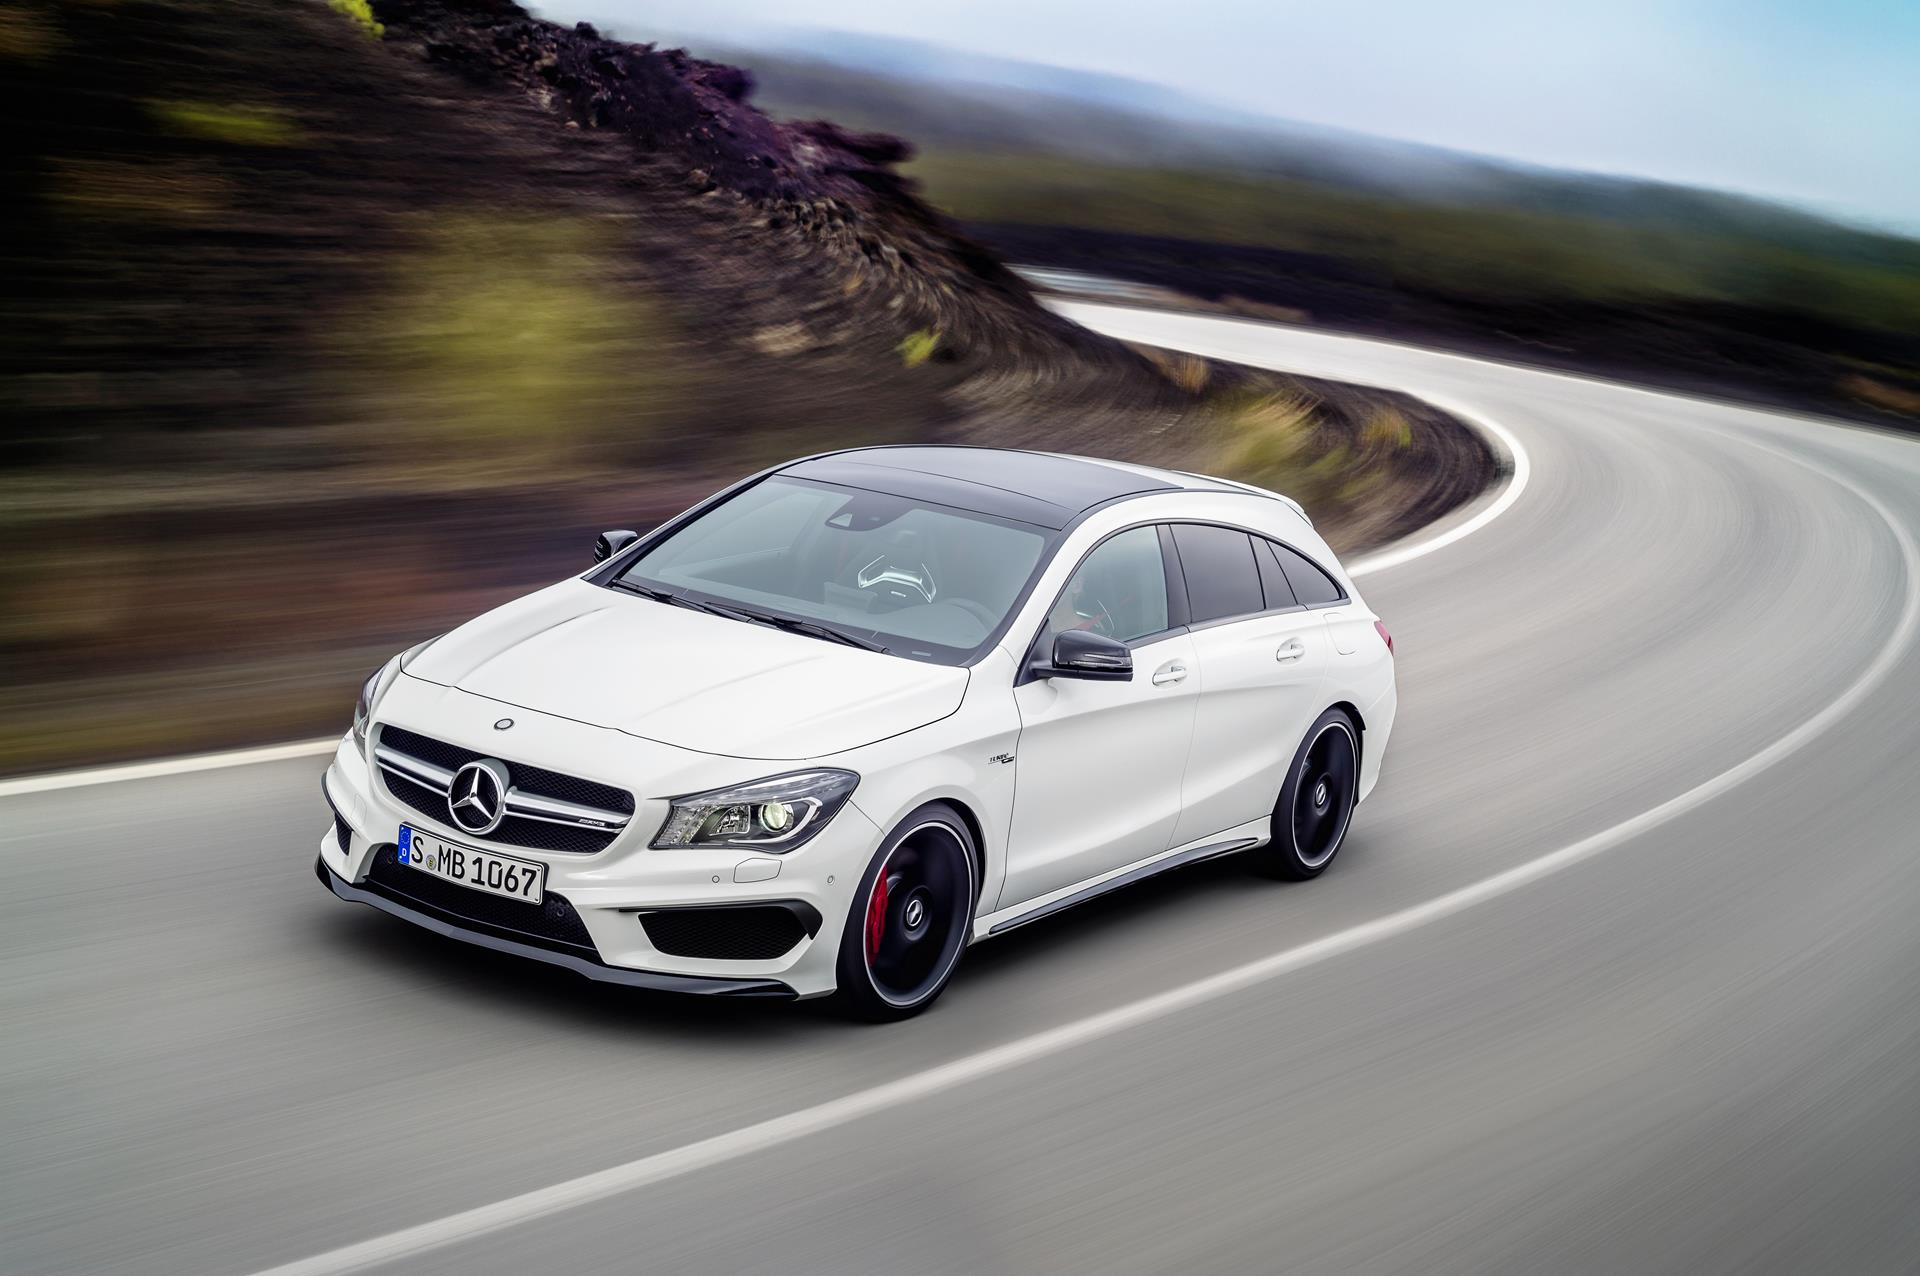 2015 mercedes benz cla 45 amg shooting brake news and information. Black Bedroom Furniture Sets. Home Design Ideas